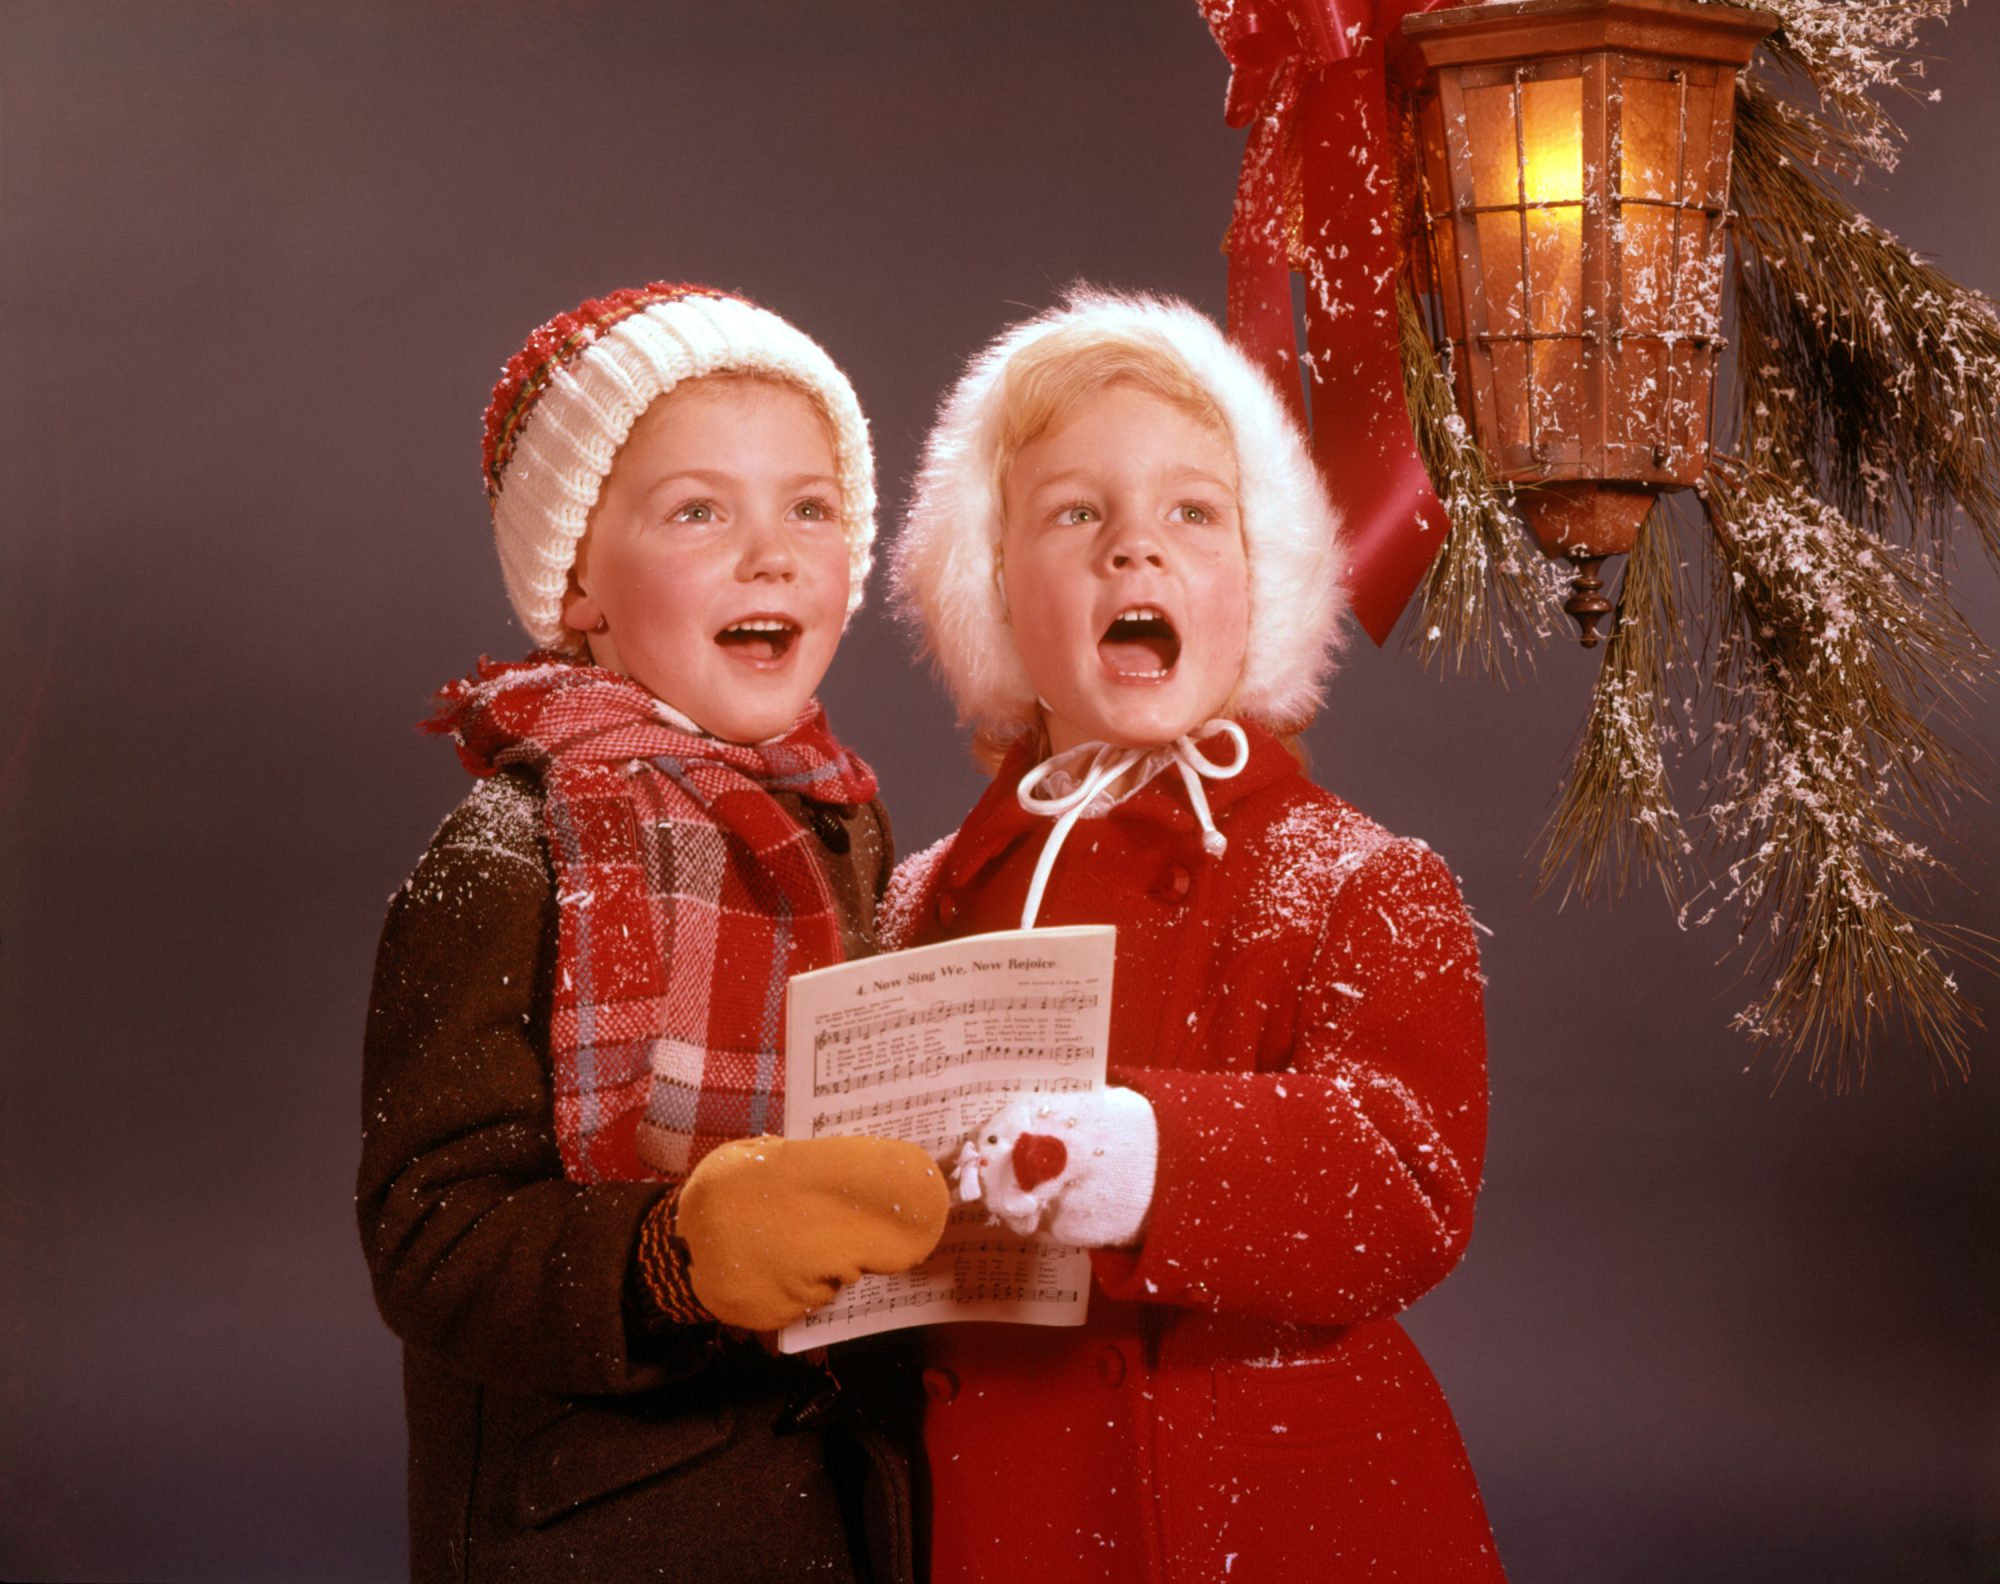 Holiday Music Could Be Mentally Draining, According to Science